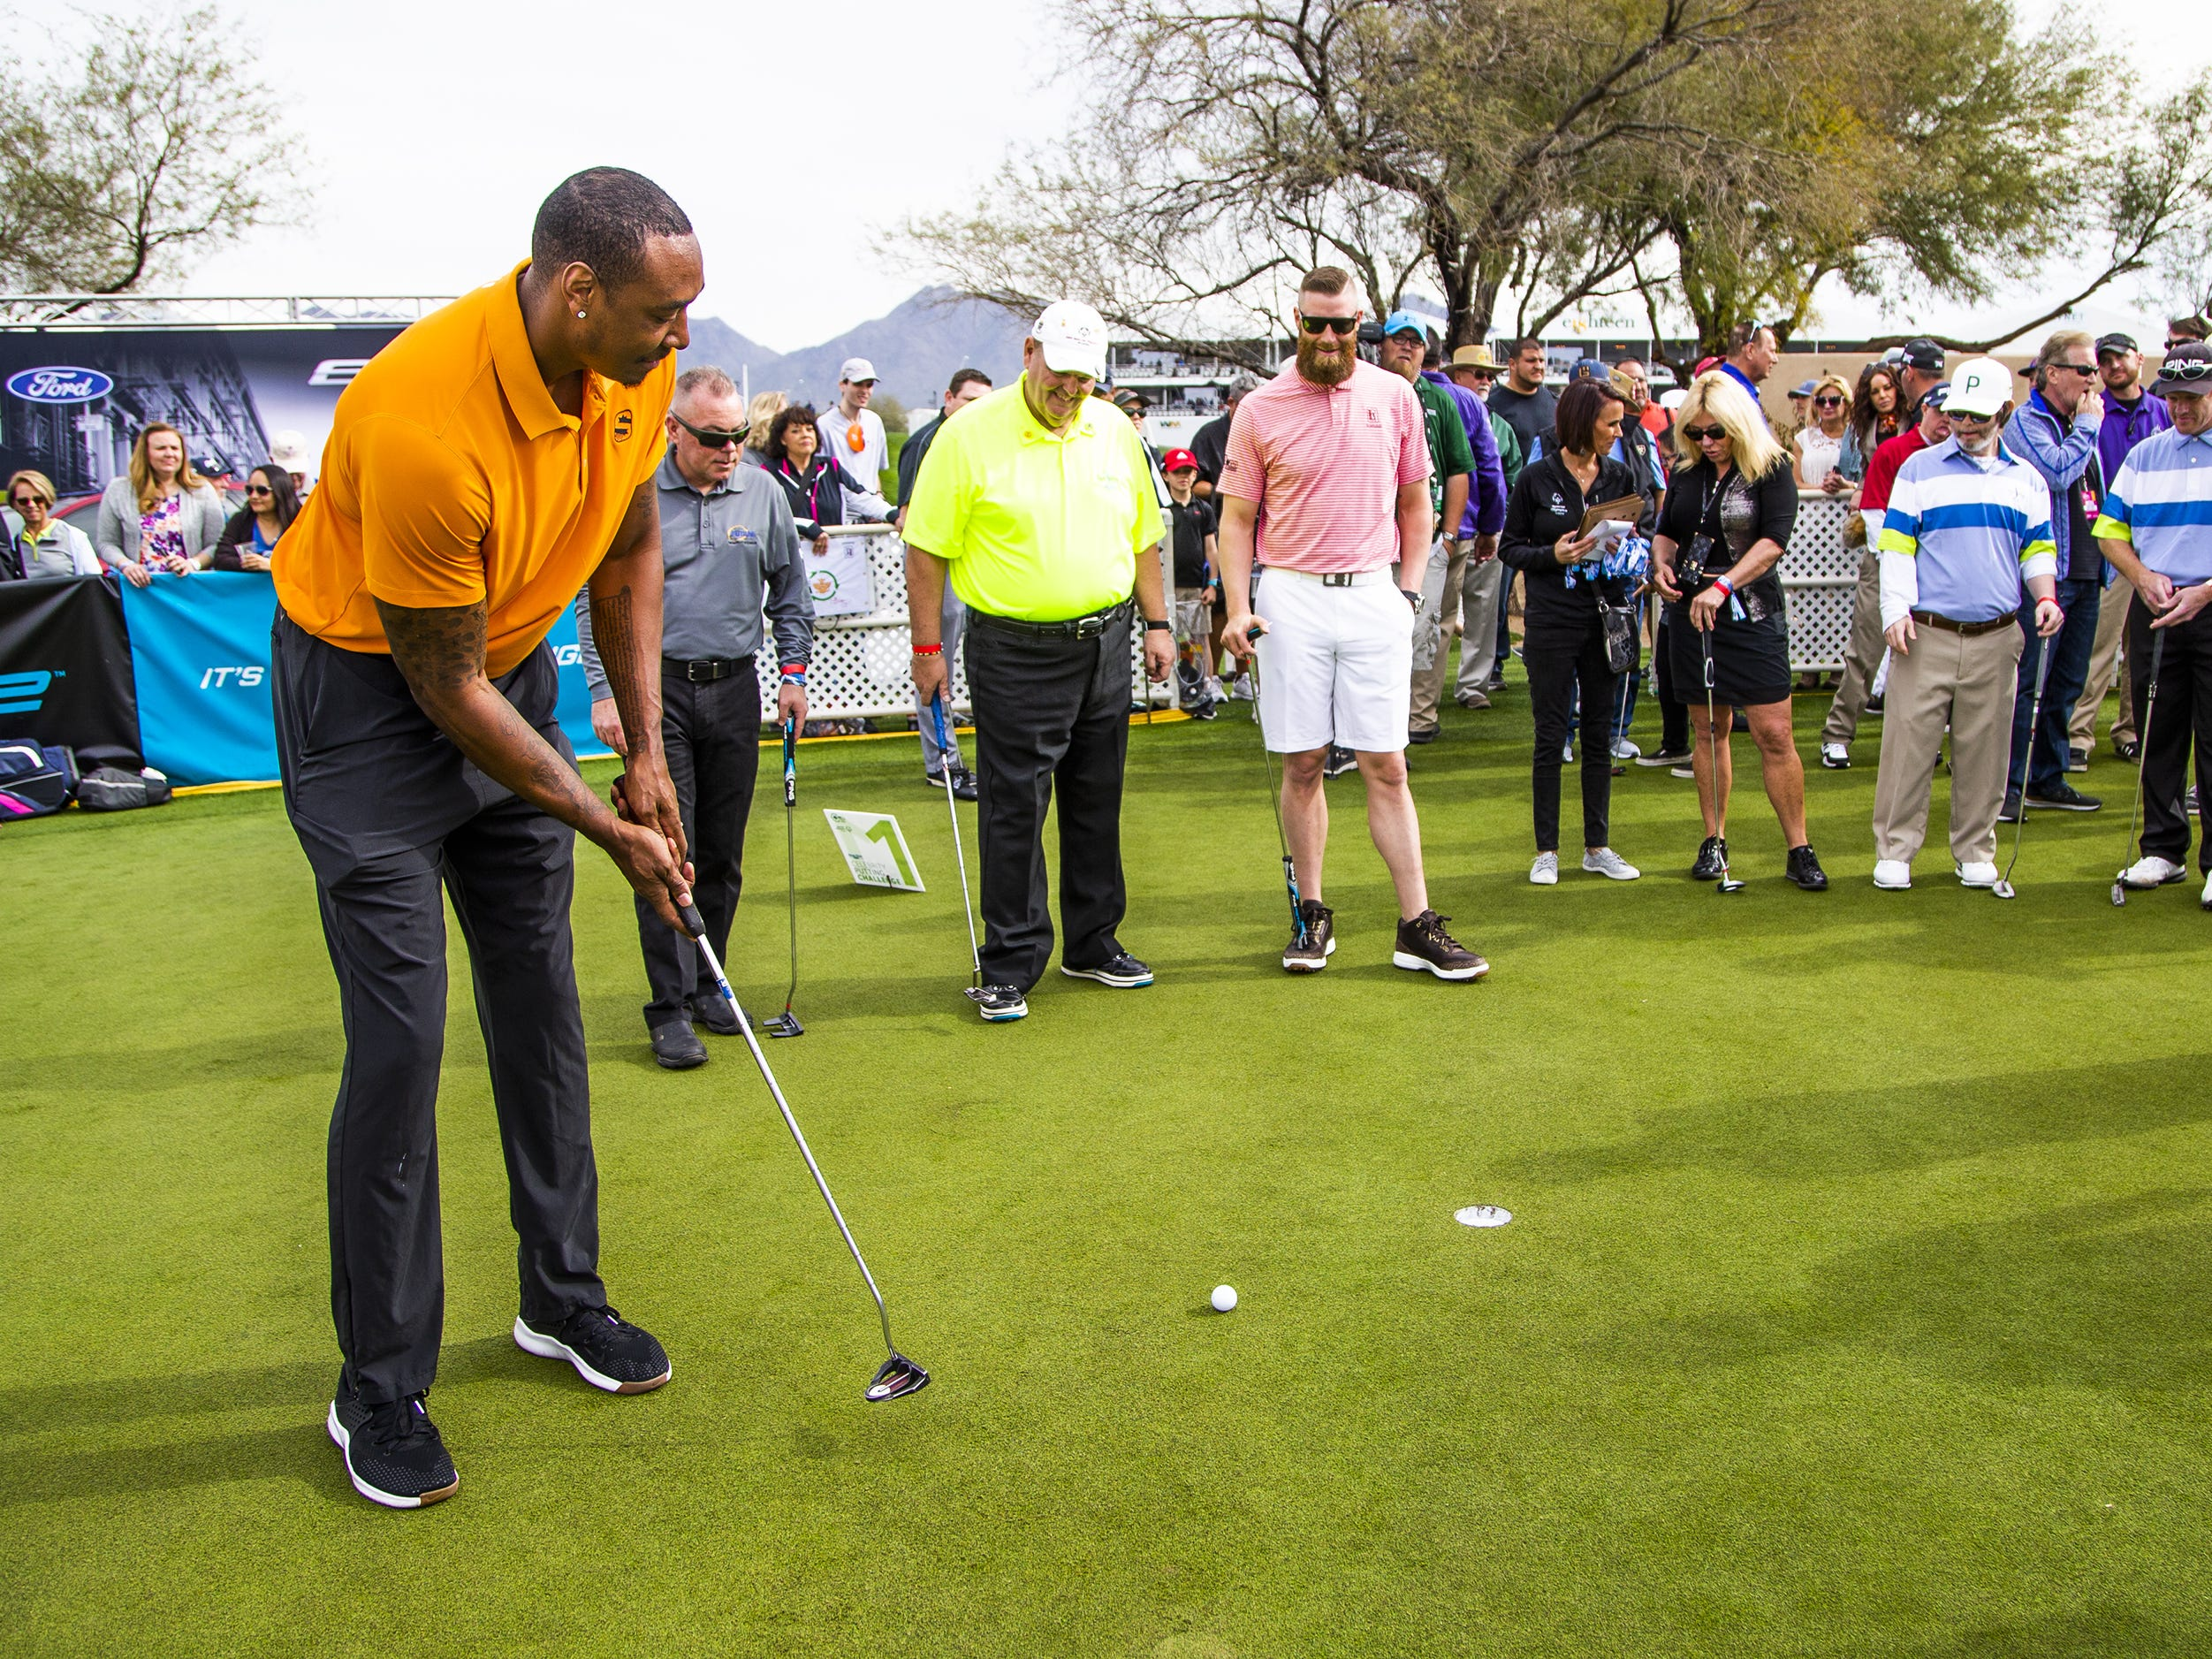 Phoenix Suns community ambassador Steven Hunter, left, putts during the San Tan Ford Special Olympics Open at the Waste Management Phoenix Open at the TPC Scottsdale, Tuesday, January 29, 2019.